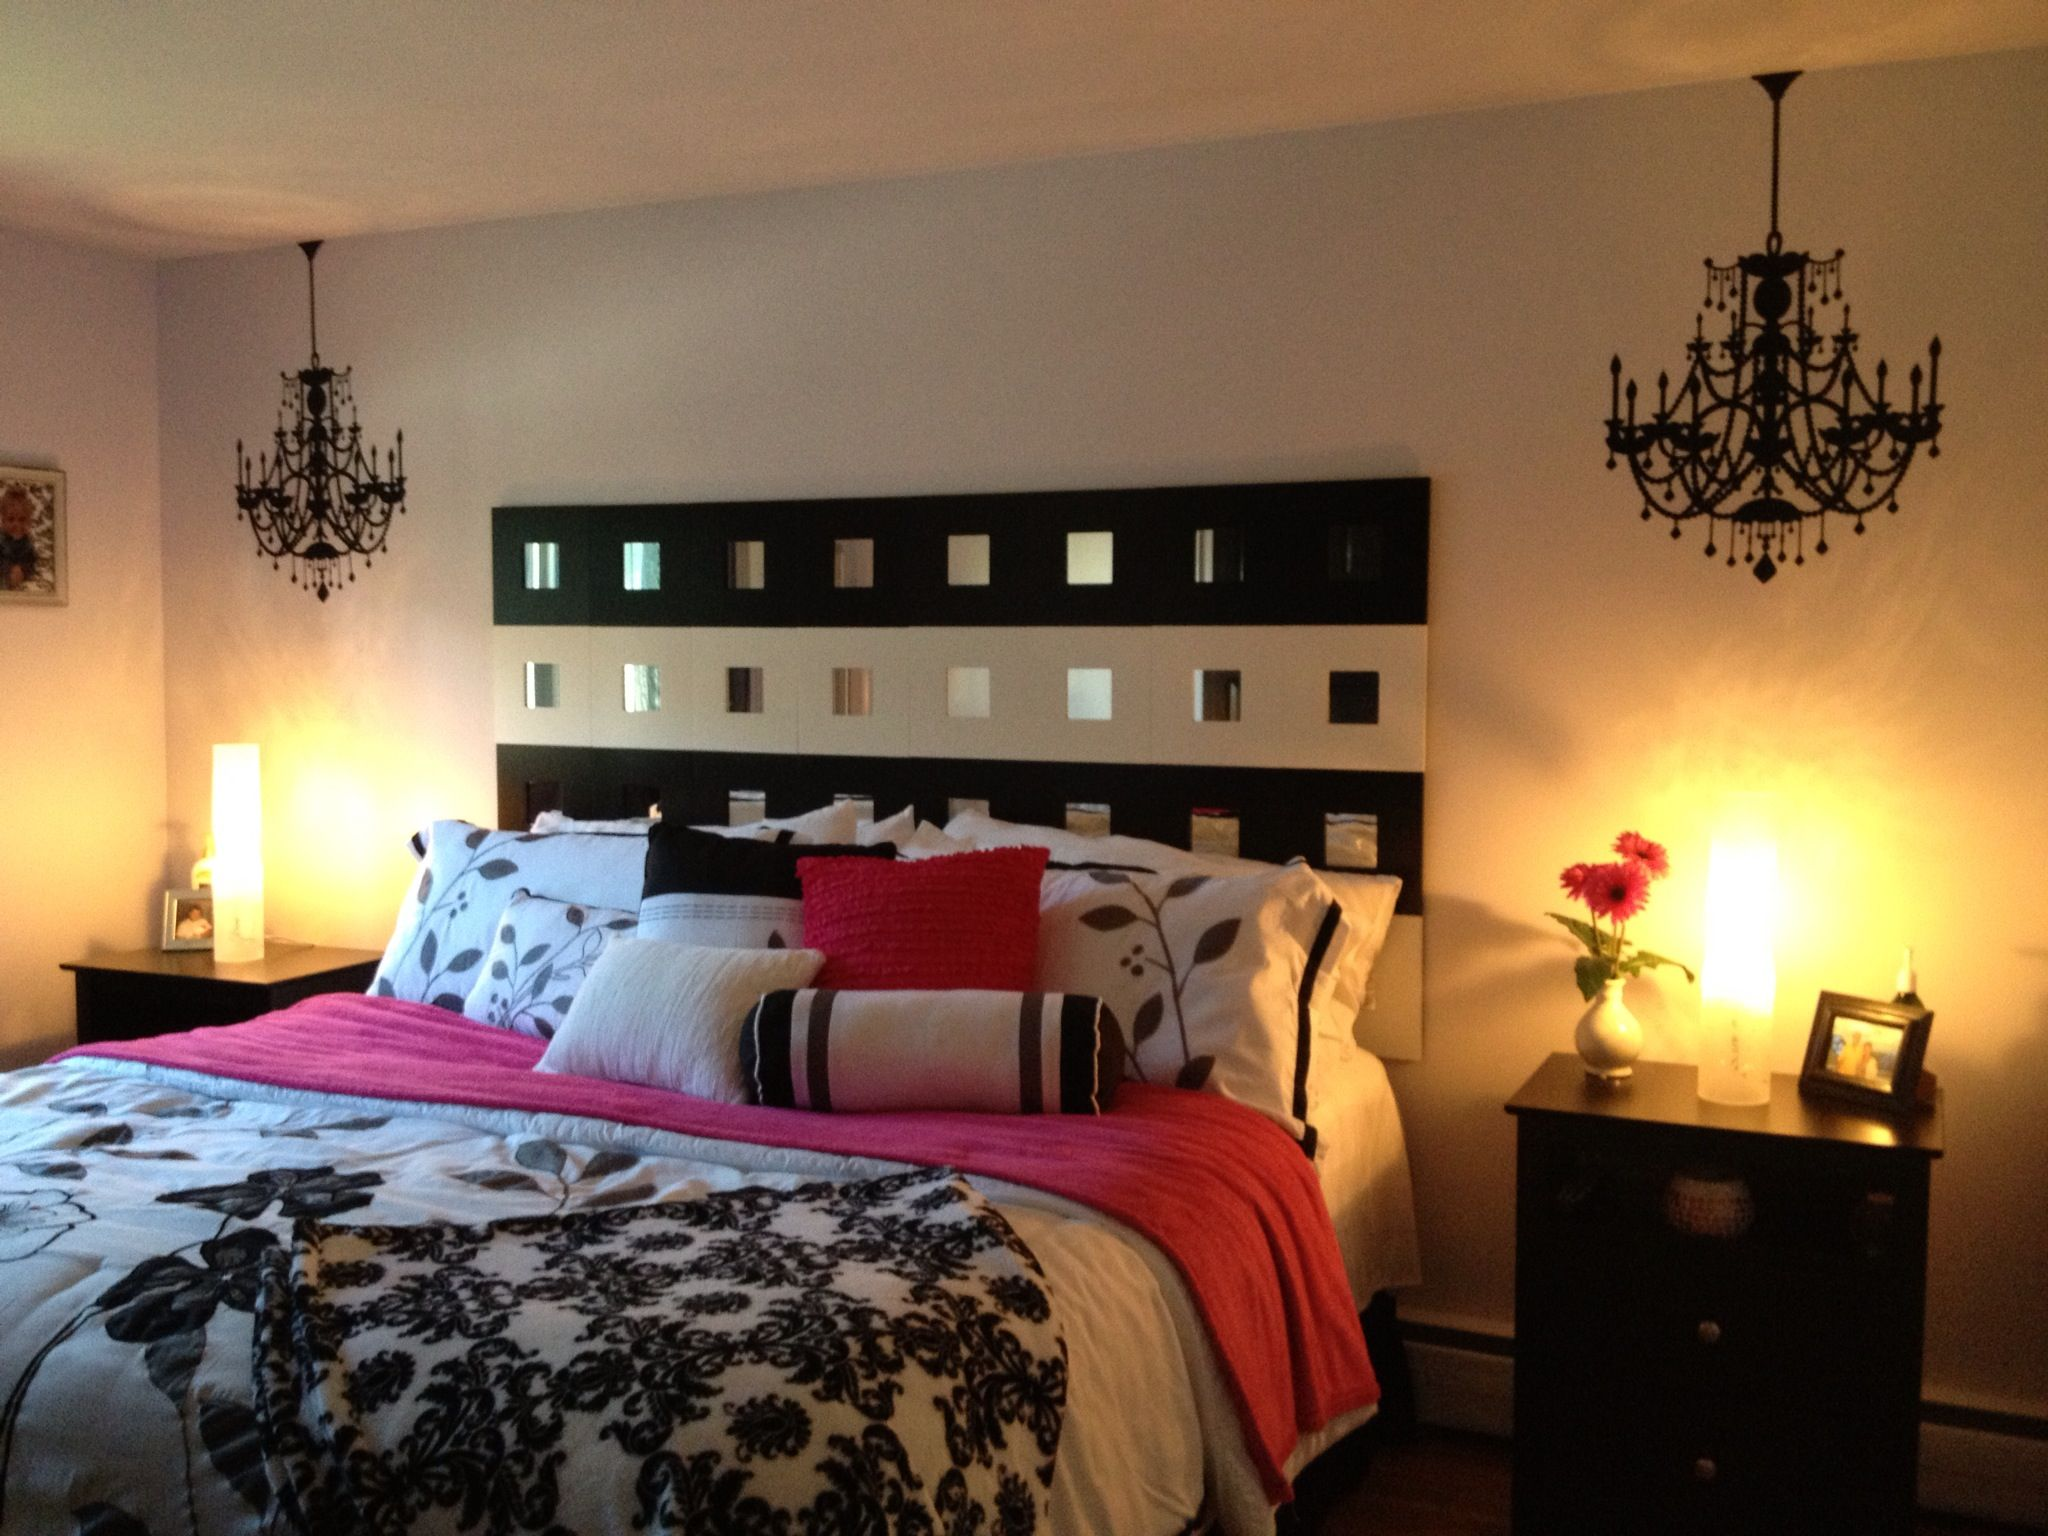 Black white hot pink bedroom for the home for Black white pink bedroom ideas